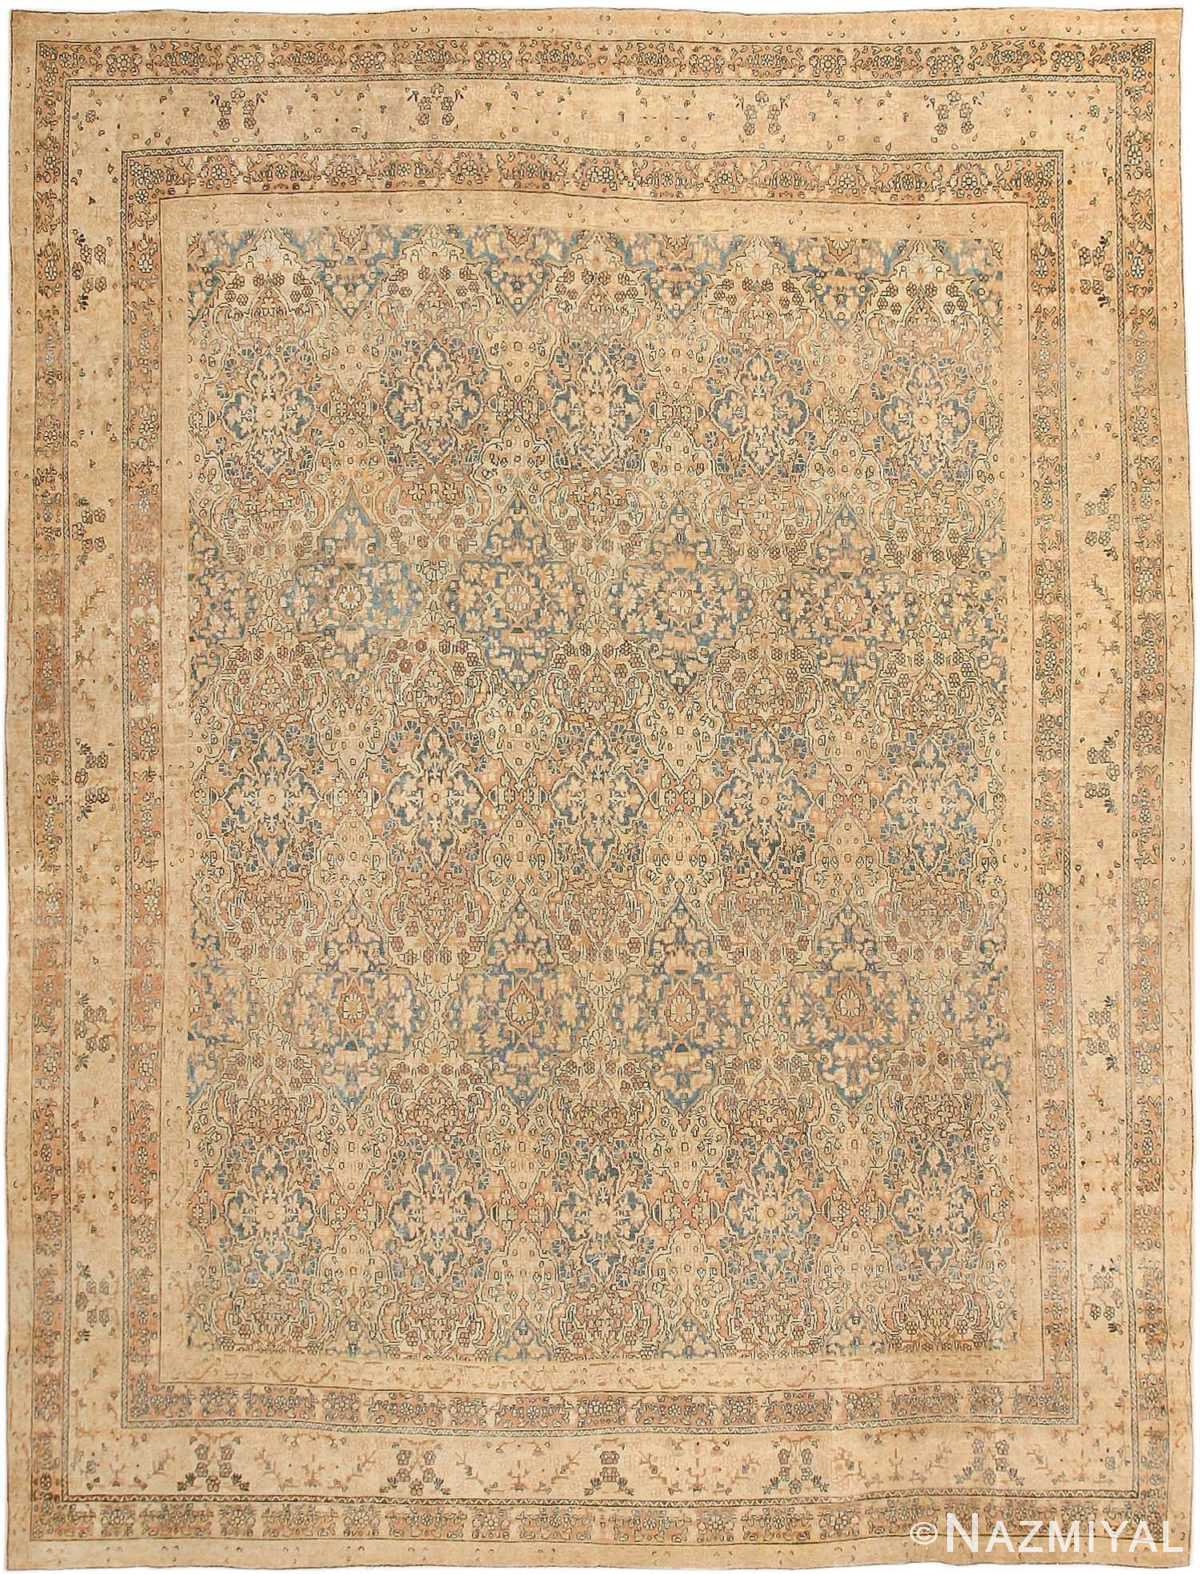 Decorative Fine Antique Room Size Persian Kerman Rug 42486 Nazmiyal